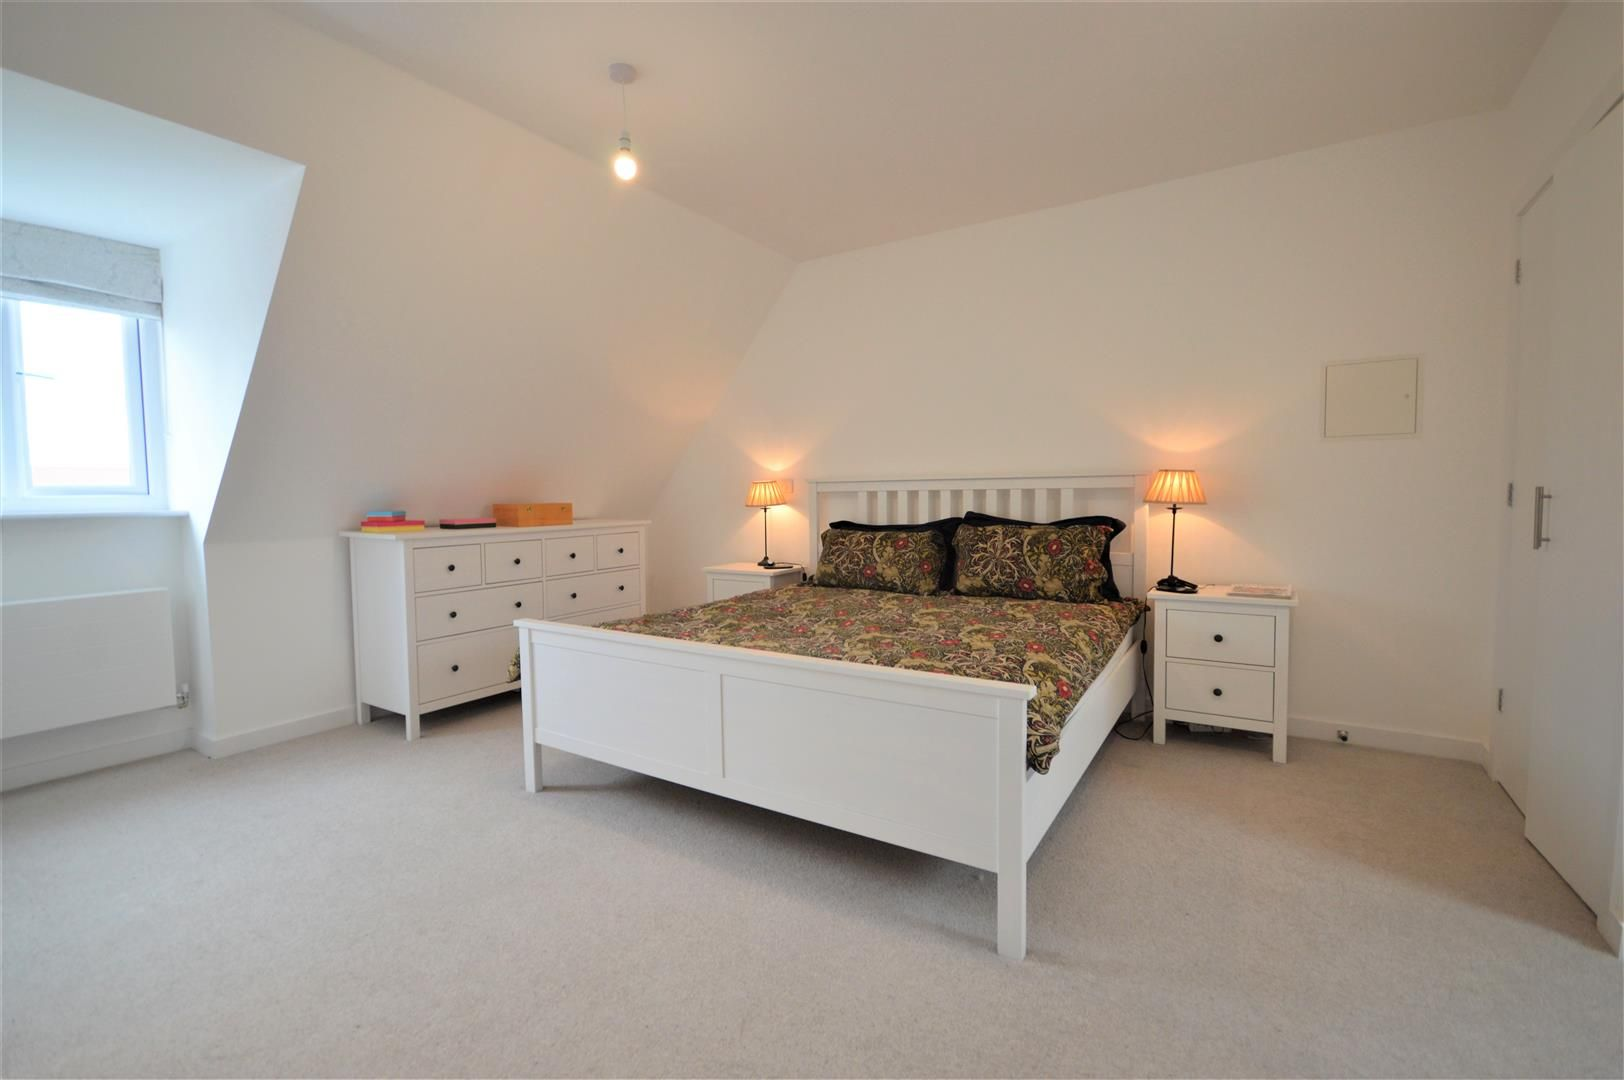 5 bed detached for sale in Weobley  - Property Image 12